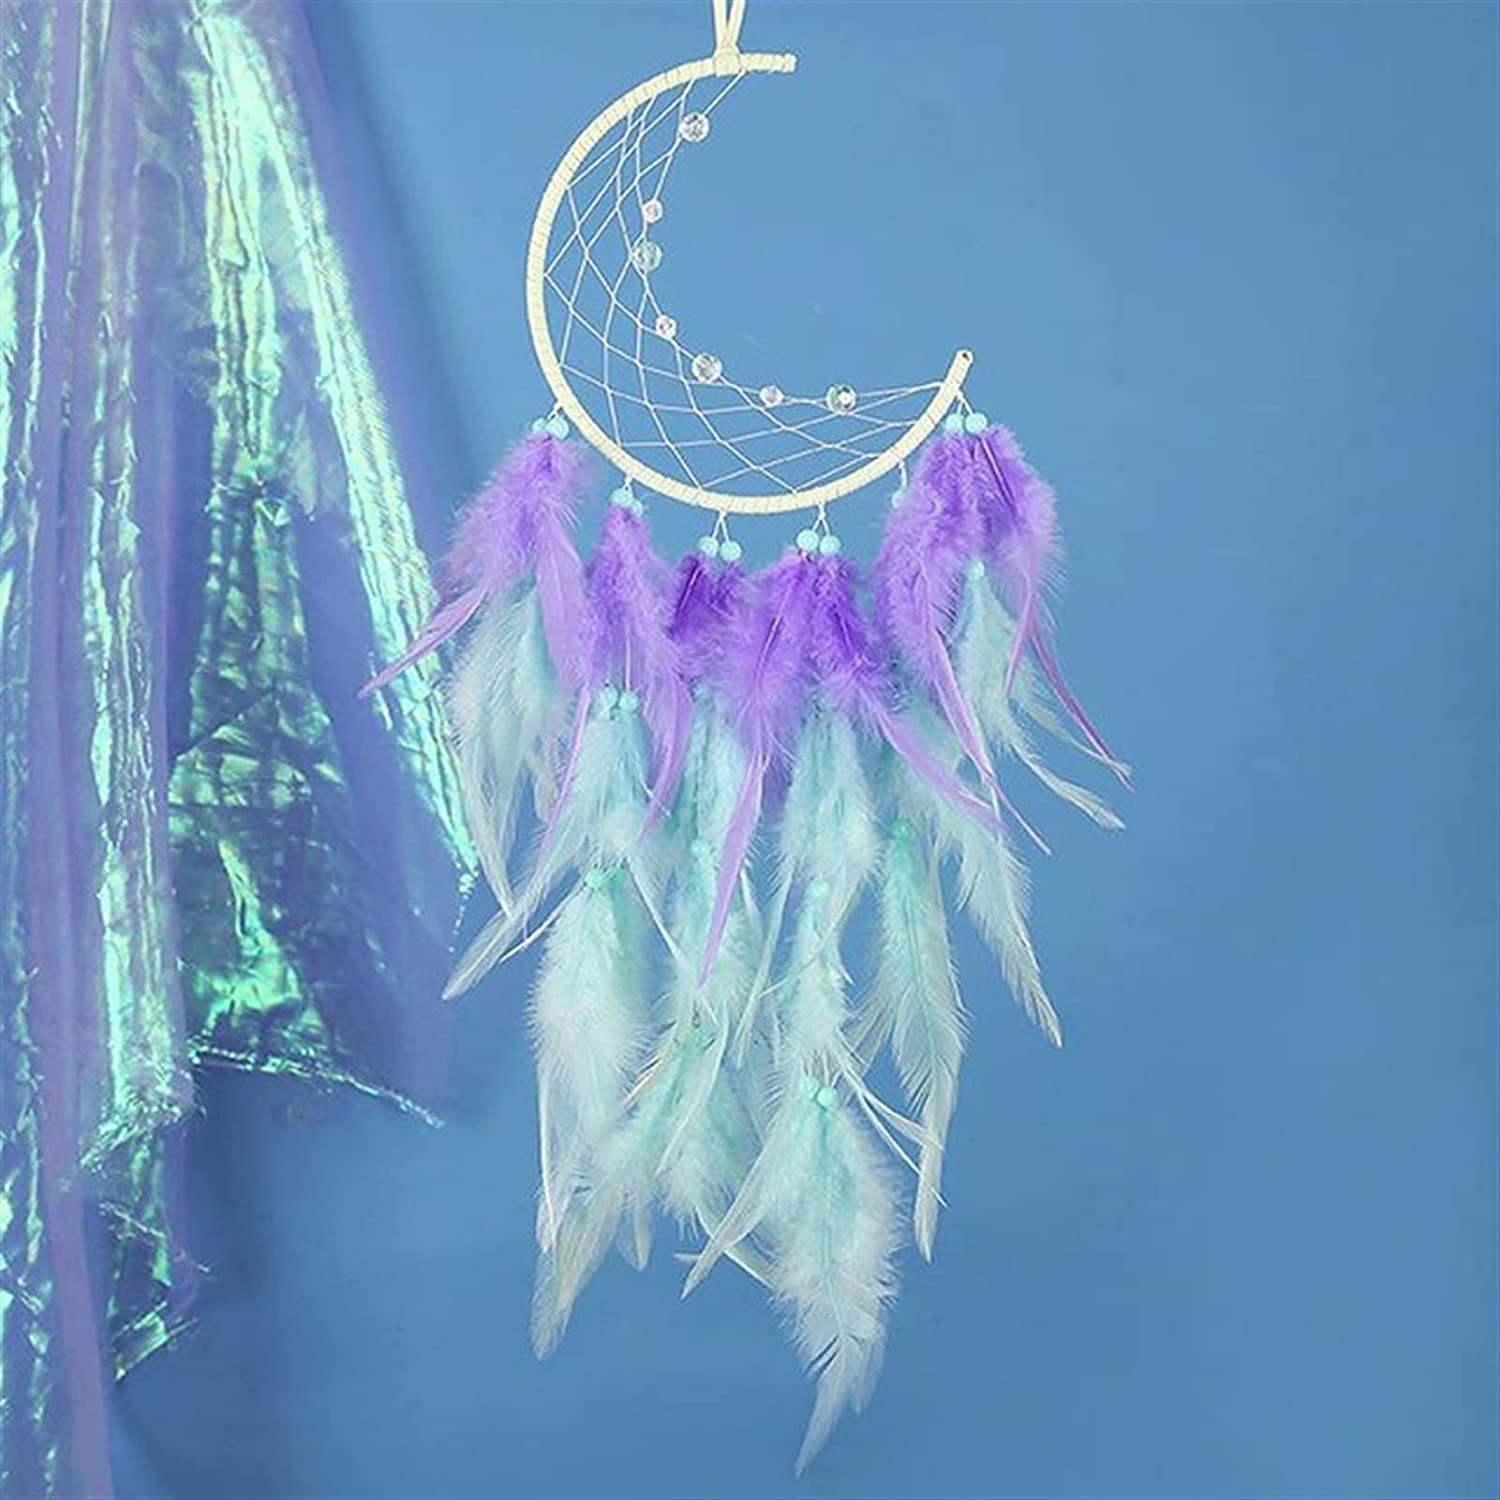 JINSHAO Excellent Dream Catcher National Feather Ribbons New item Ornaments Lace Fe